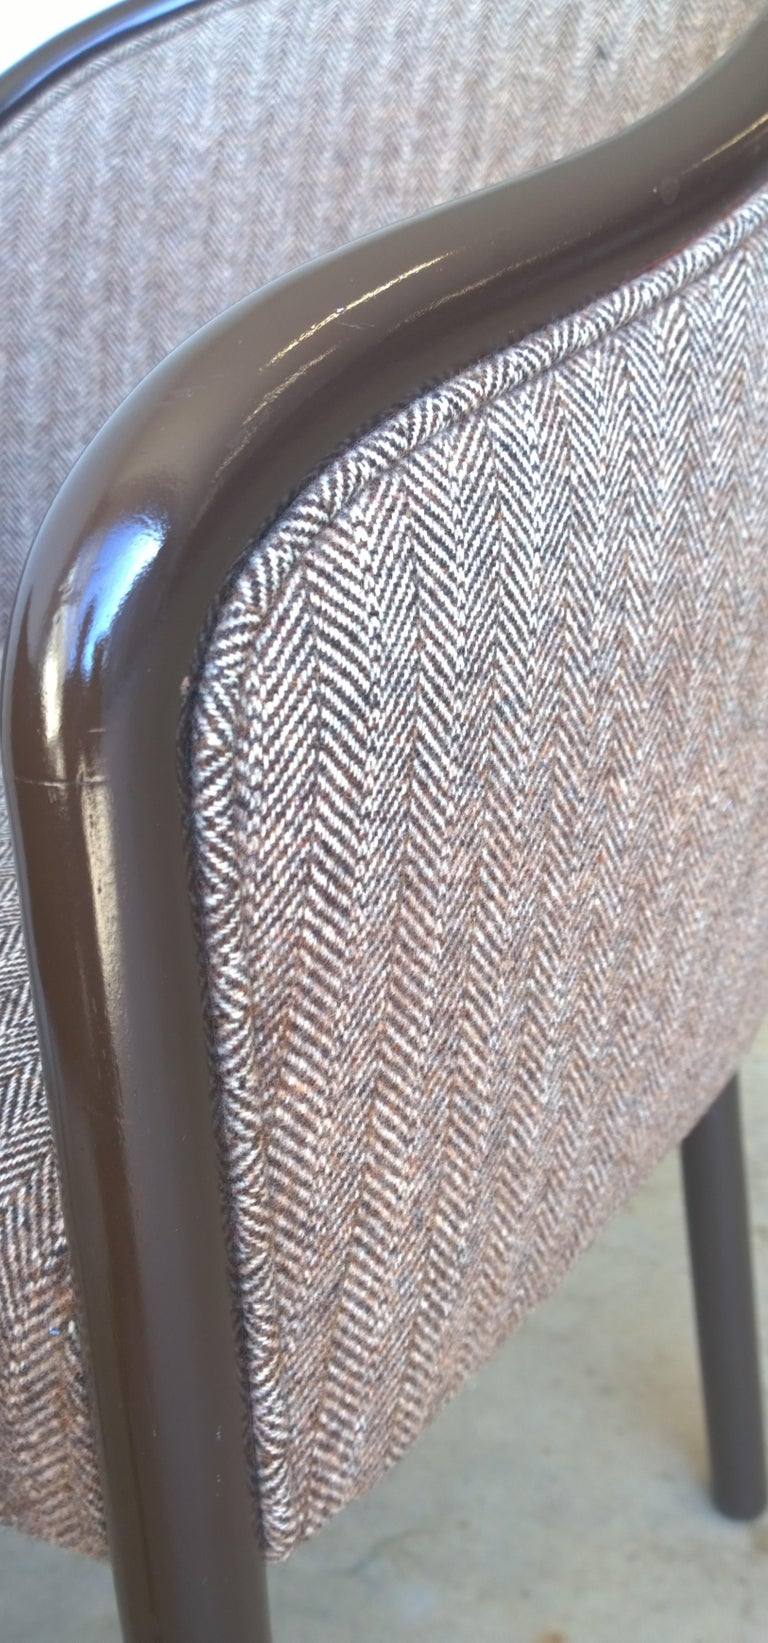 Pr of Ward Bennett Brown Lacquered Fame w/ Herringbone Wool Upholstery Armchairs For Sale 2